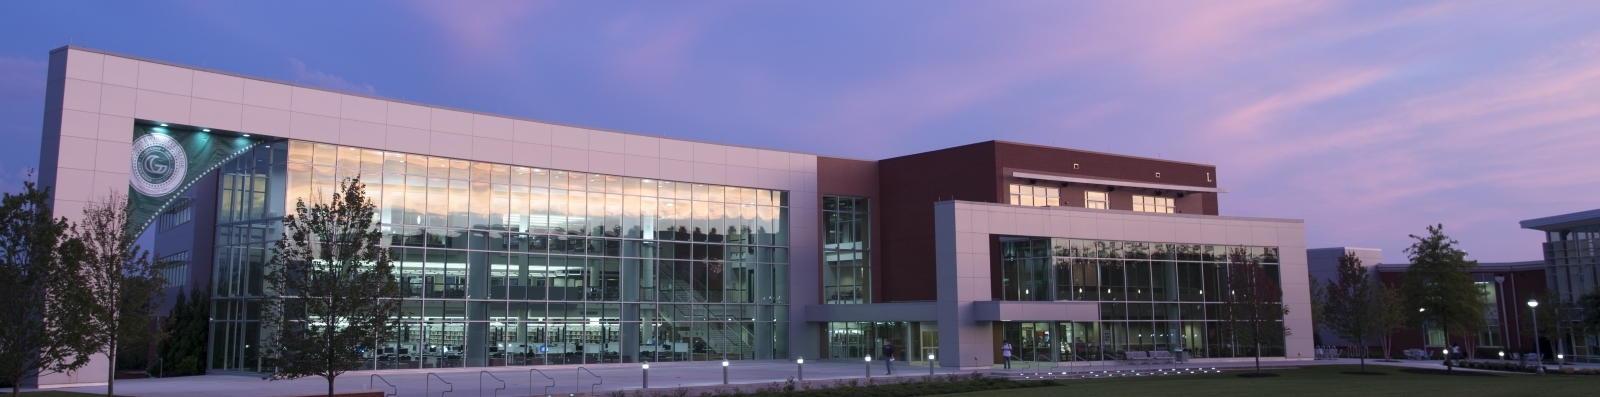 GGC library at sunset